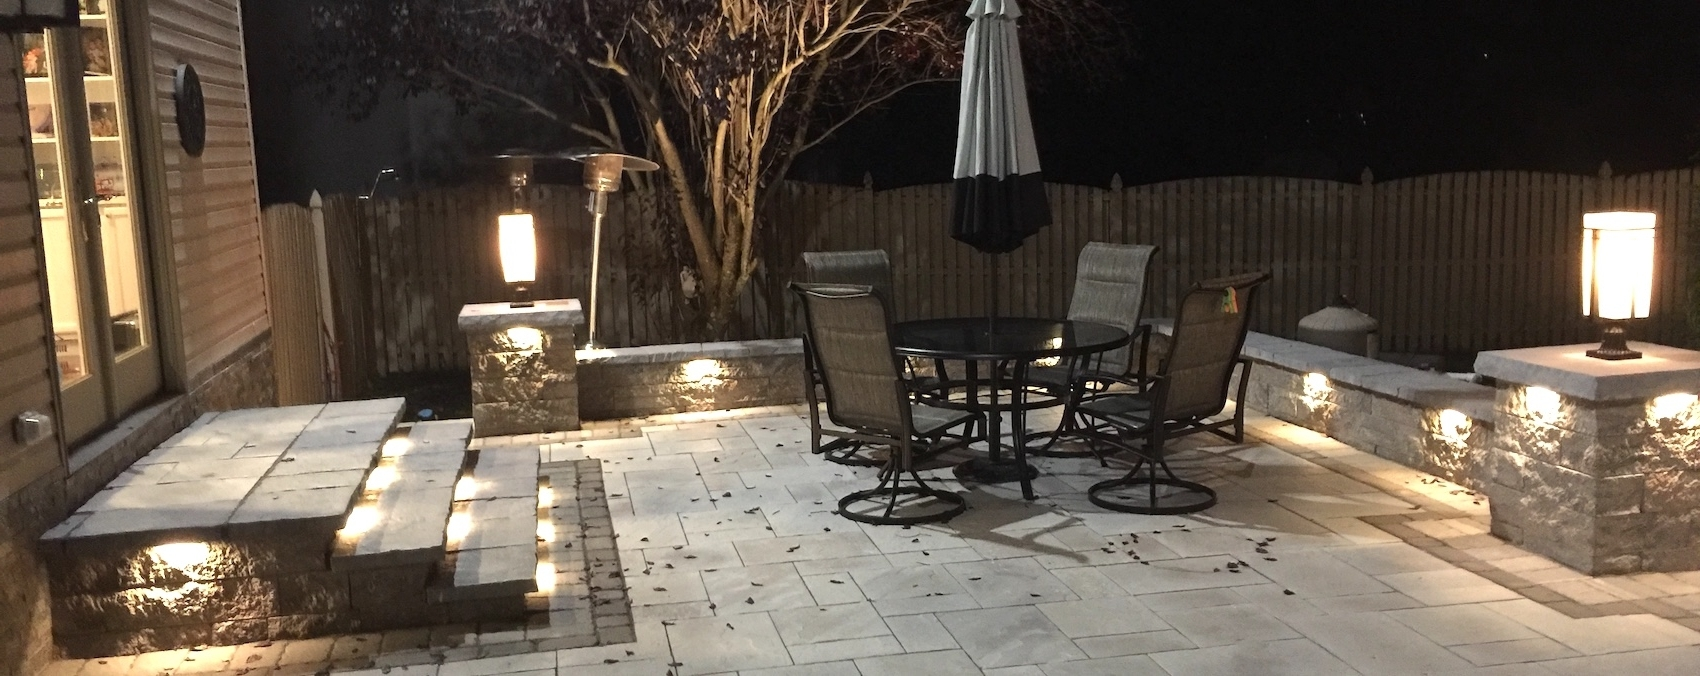 Hardscape Lighting For Patios, Pools For Outdoor Low Voltage Lanterns (View 8 of 20)